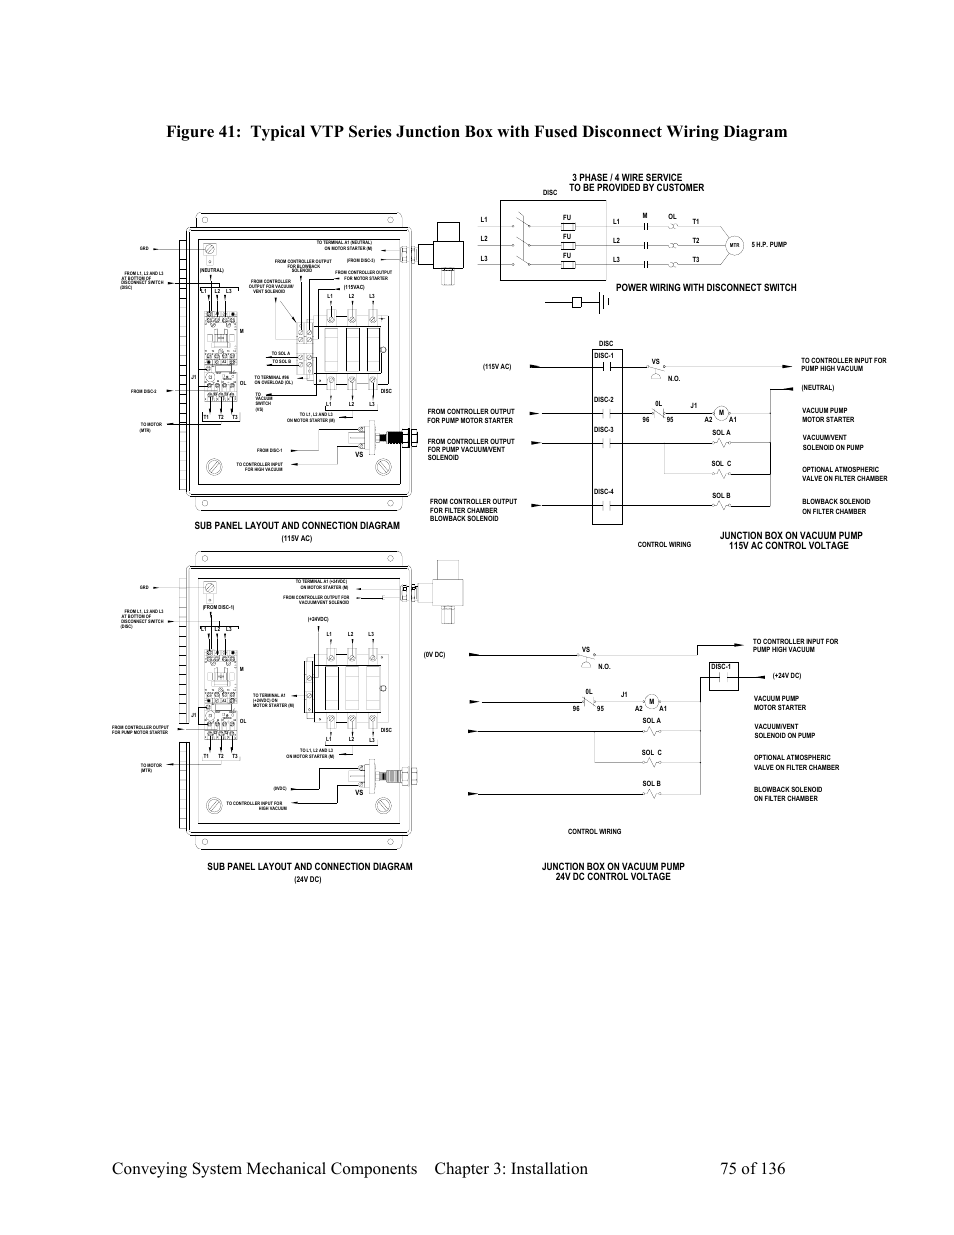 medium resolution of power wiring with disconnect switch 24v dc control voltage junction box on vacuum pump